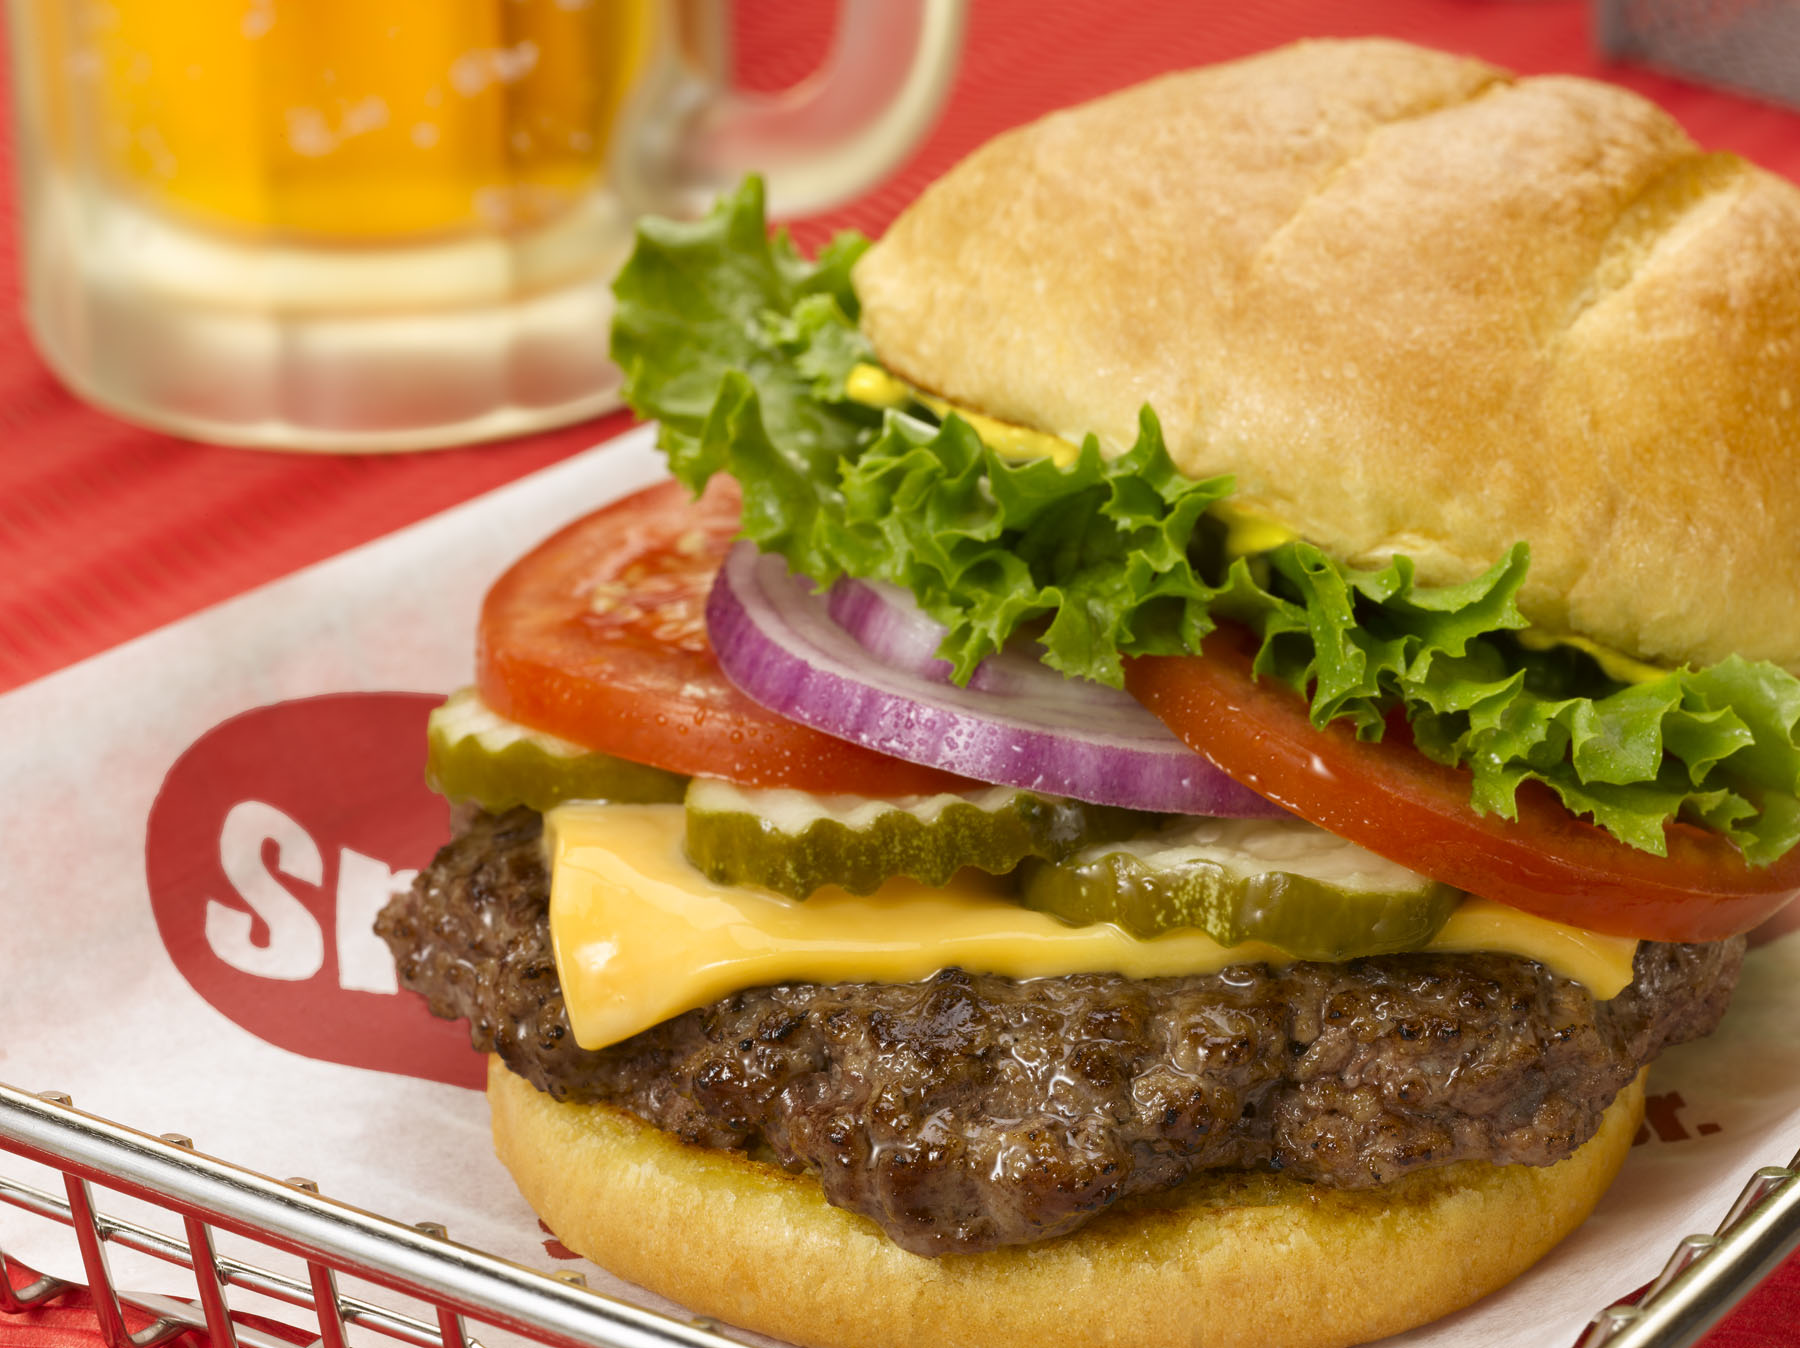 Slideshow: Austin Burger Wars heat up with Smashburger opening in the ...